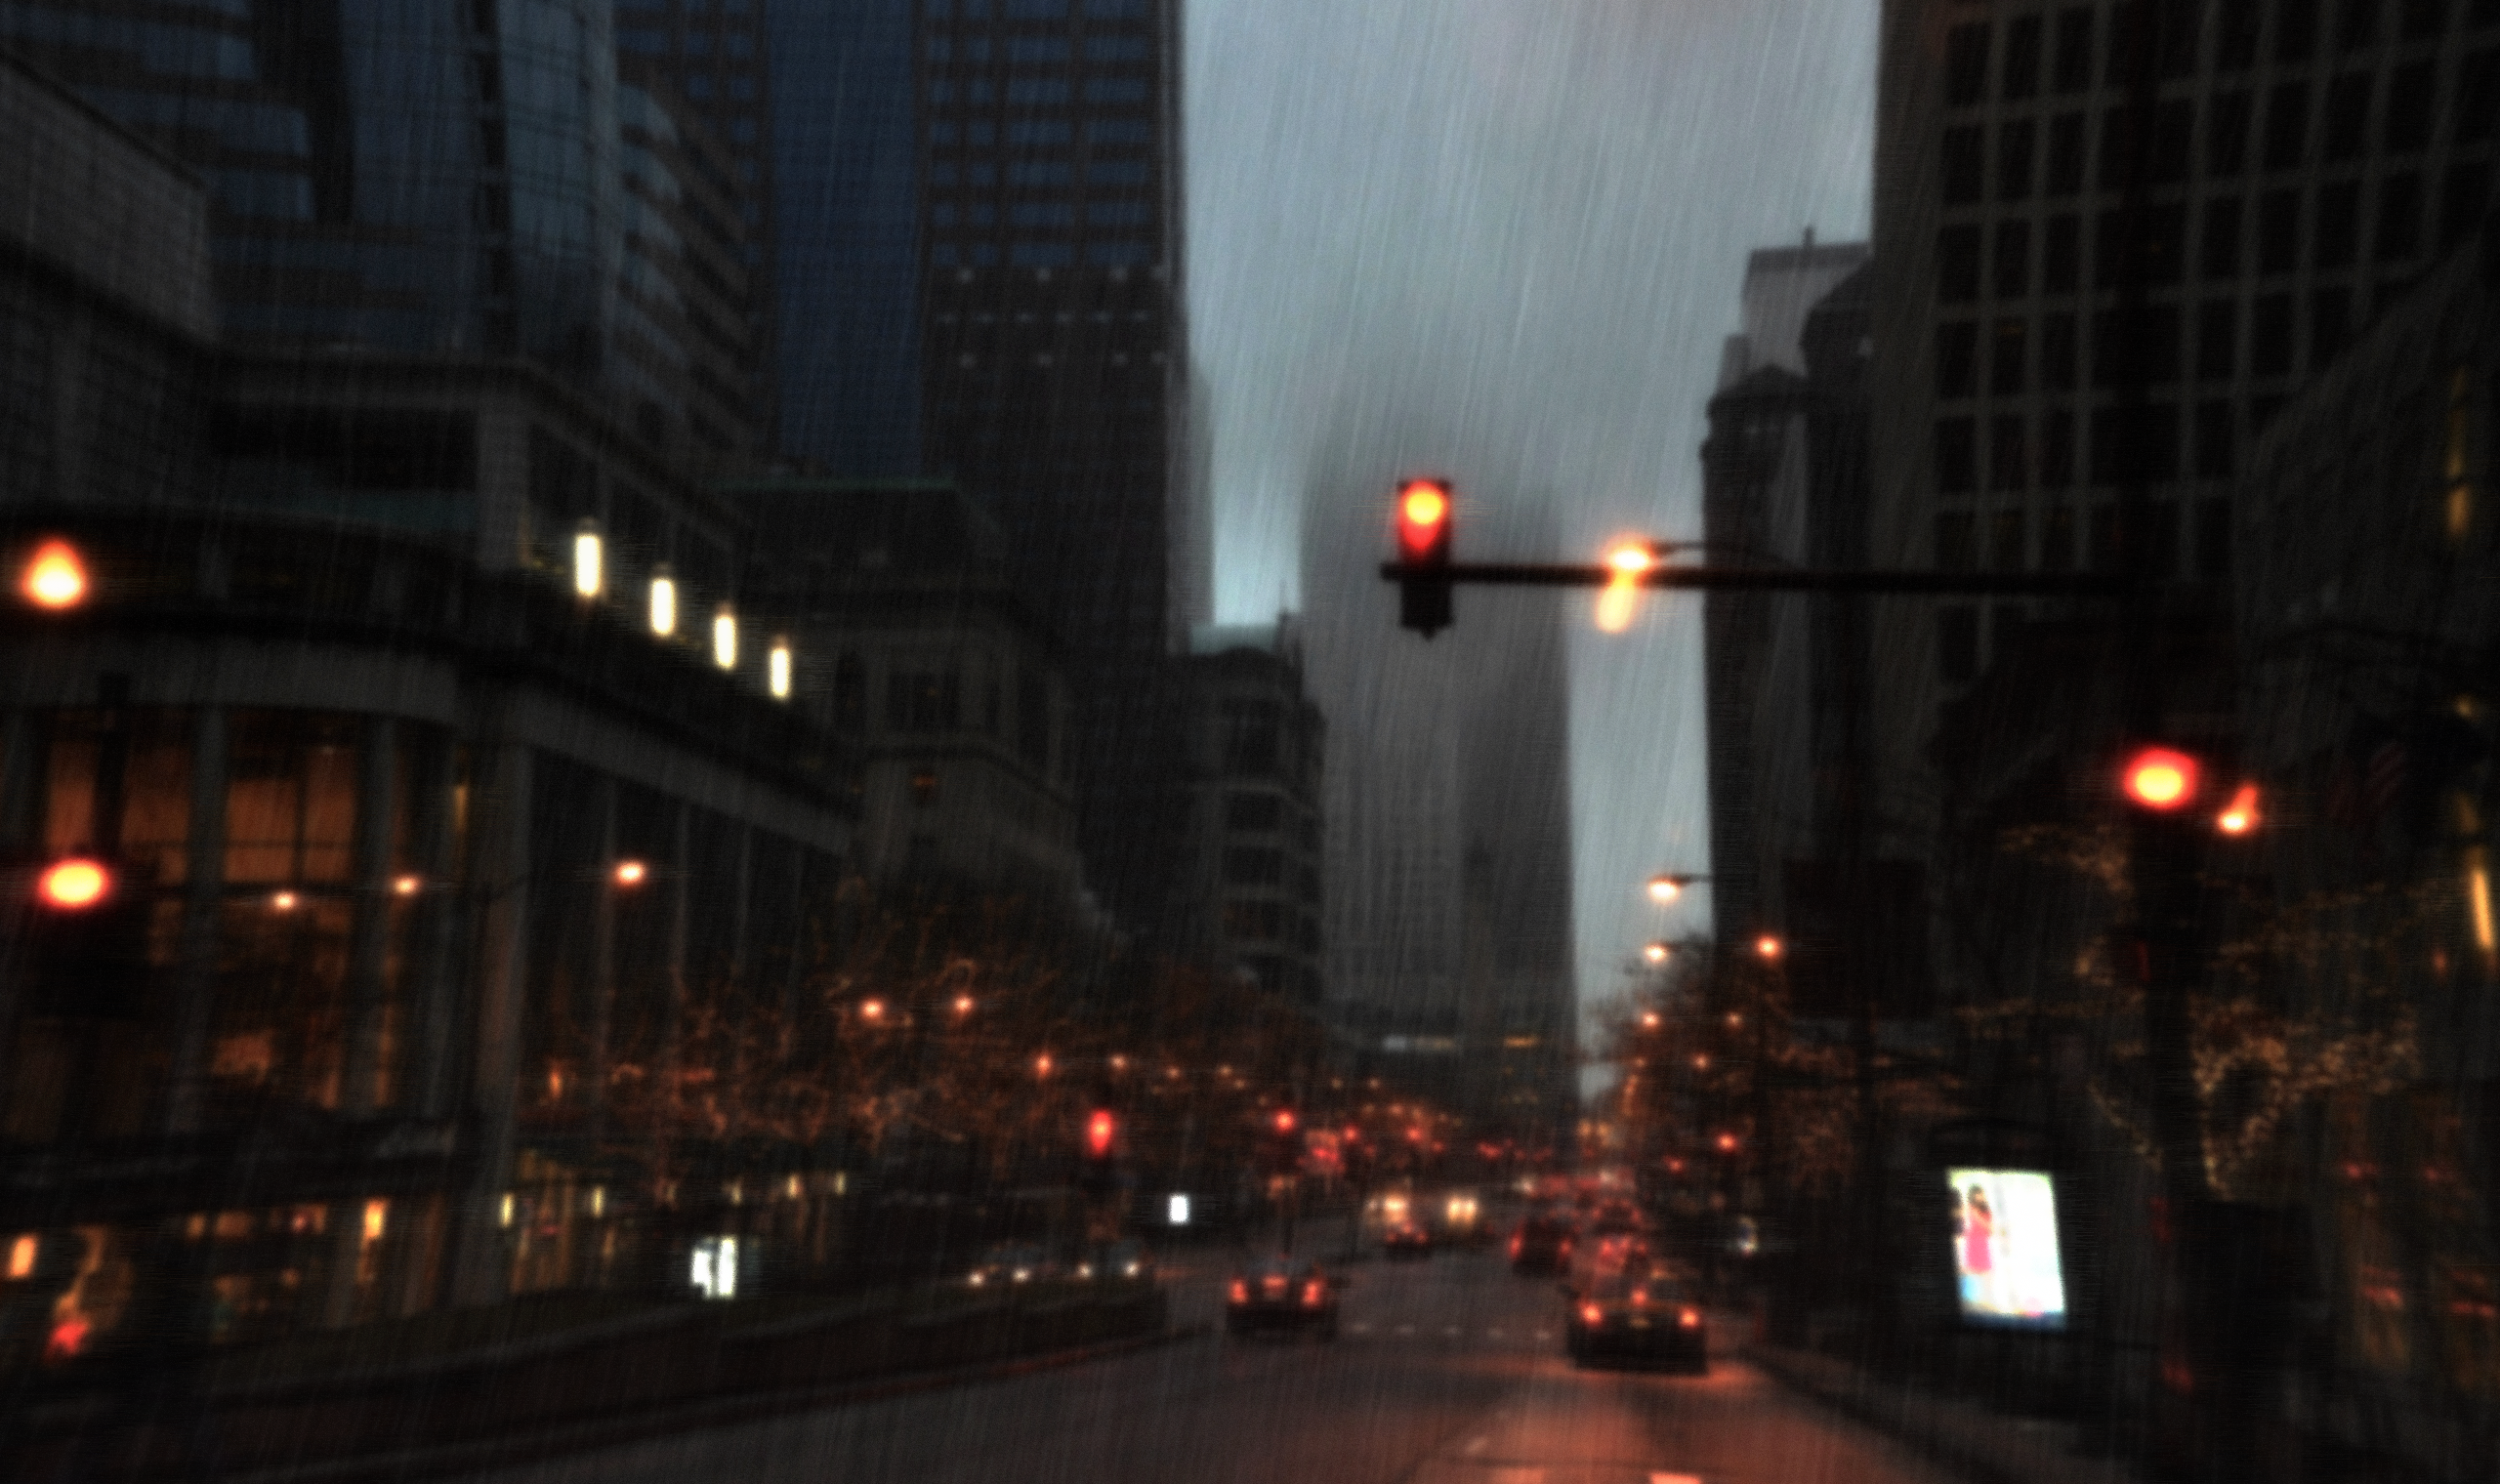 General 2560x1520 rain cityscape car lights building stores advertisements traffic Chicago city USA